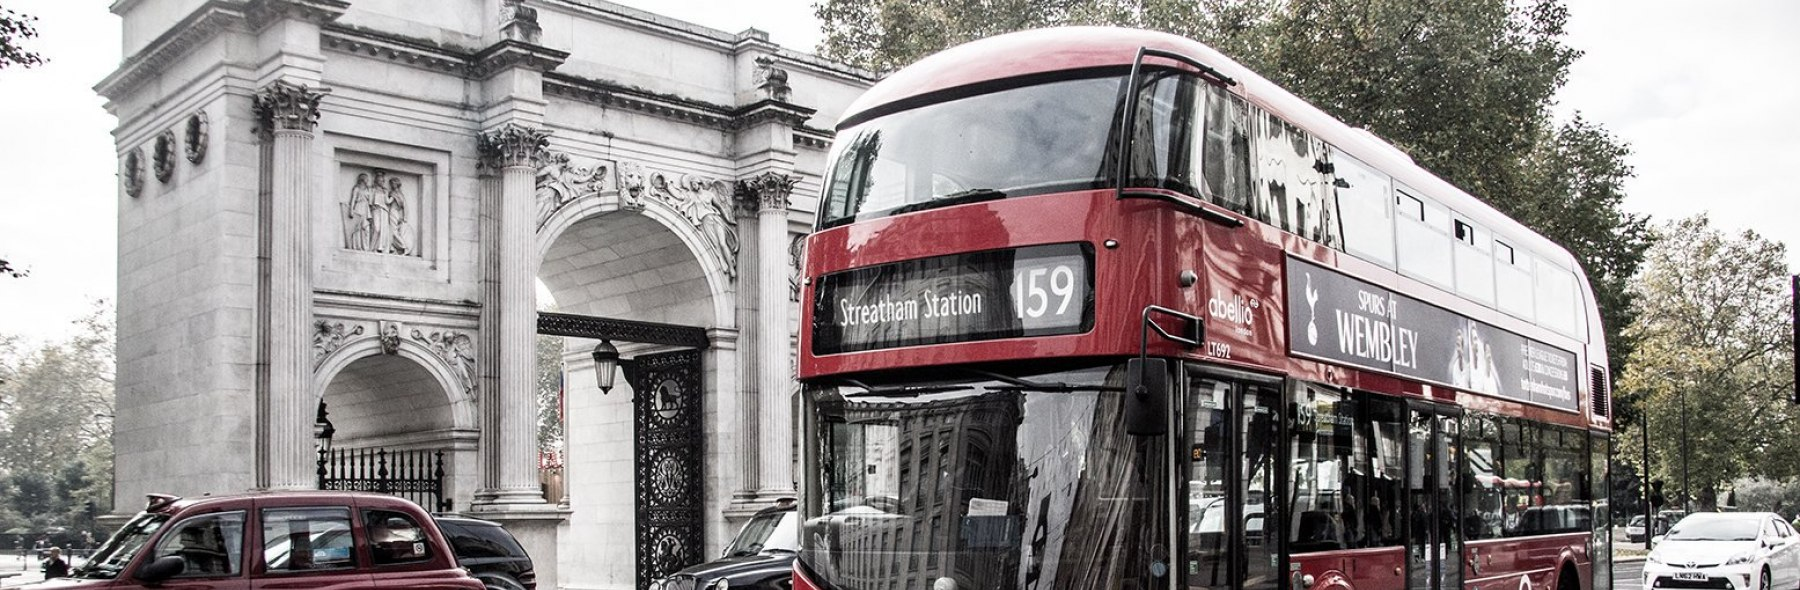 London Bus Abellio